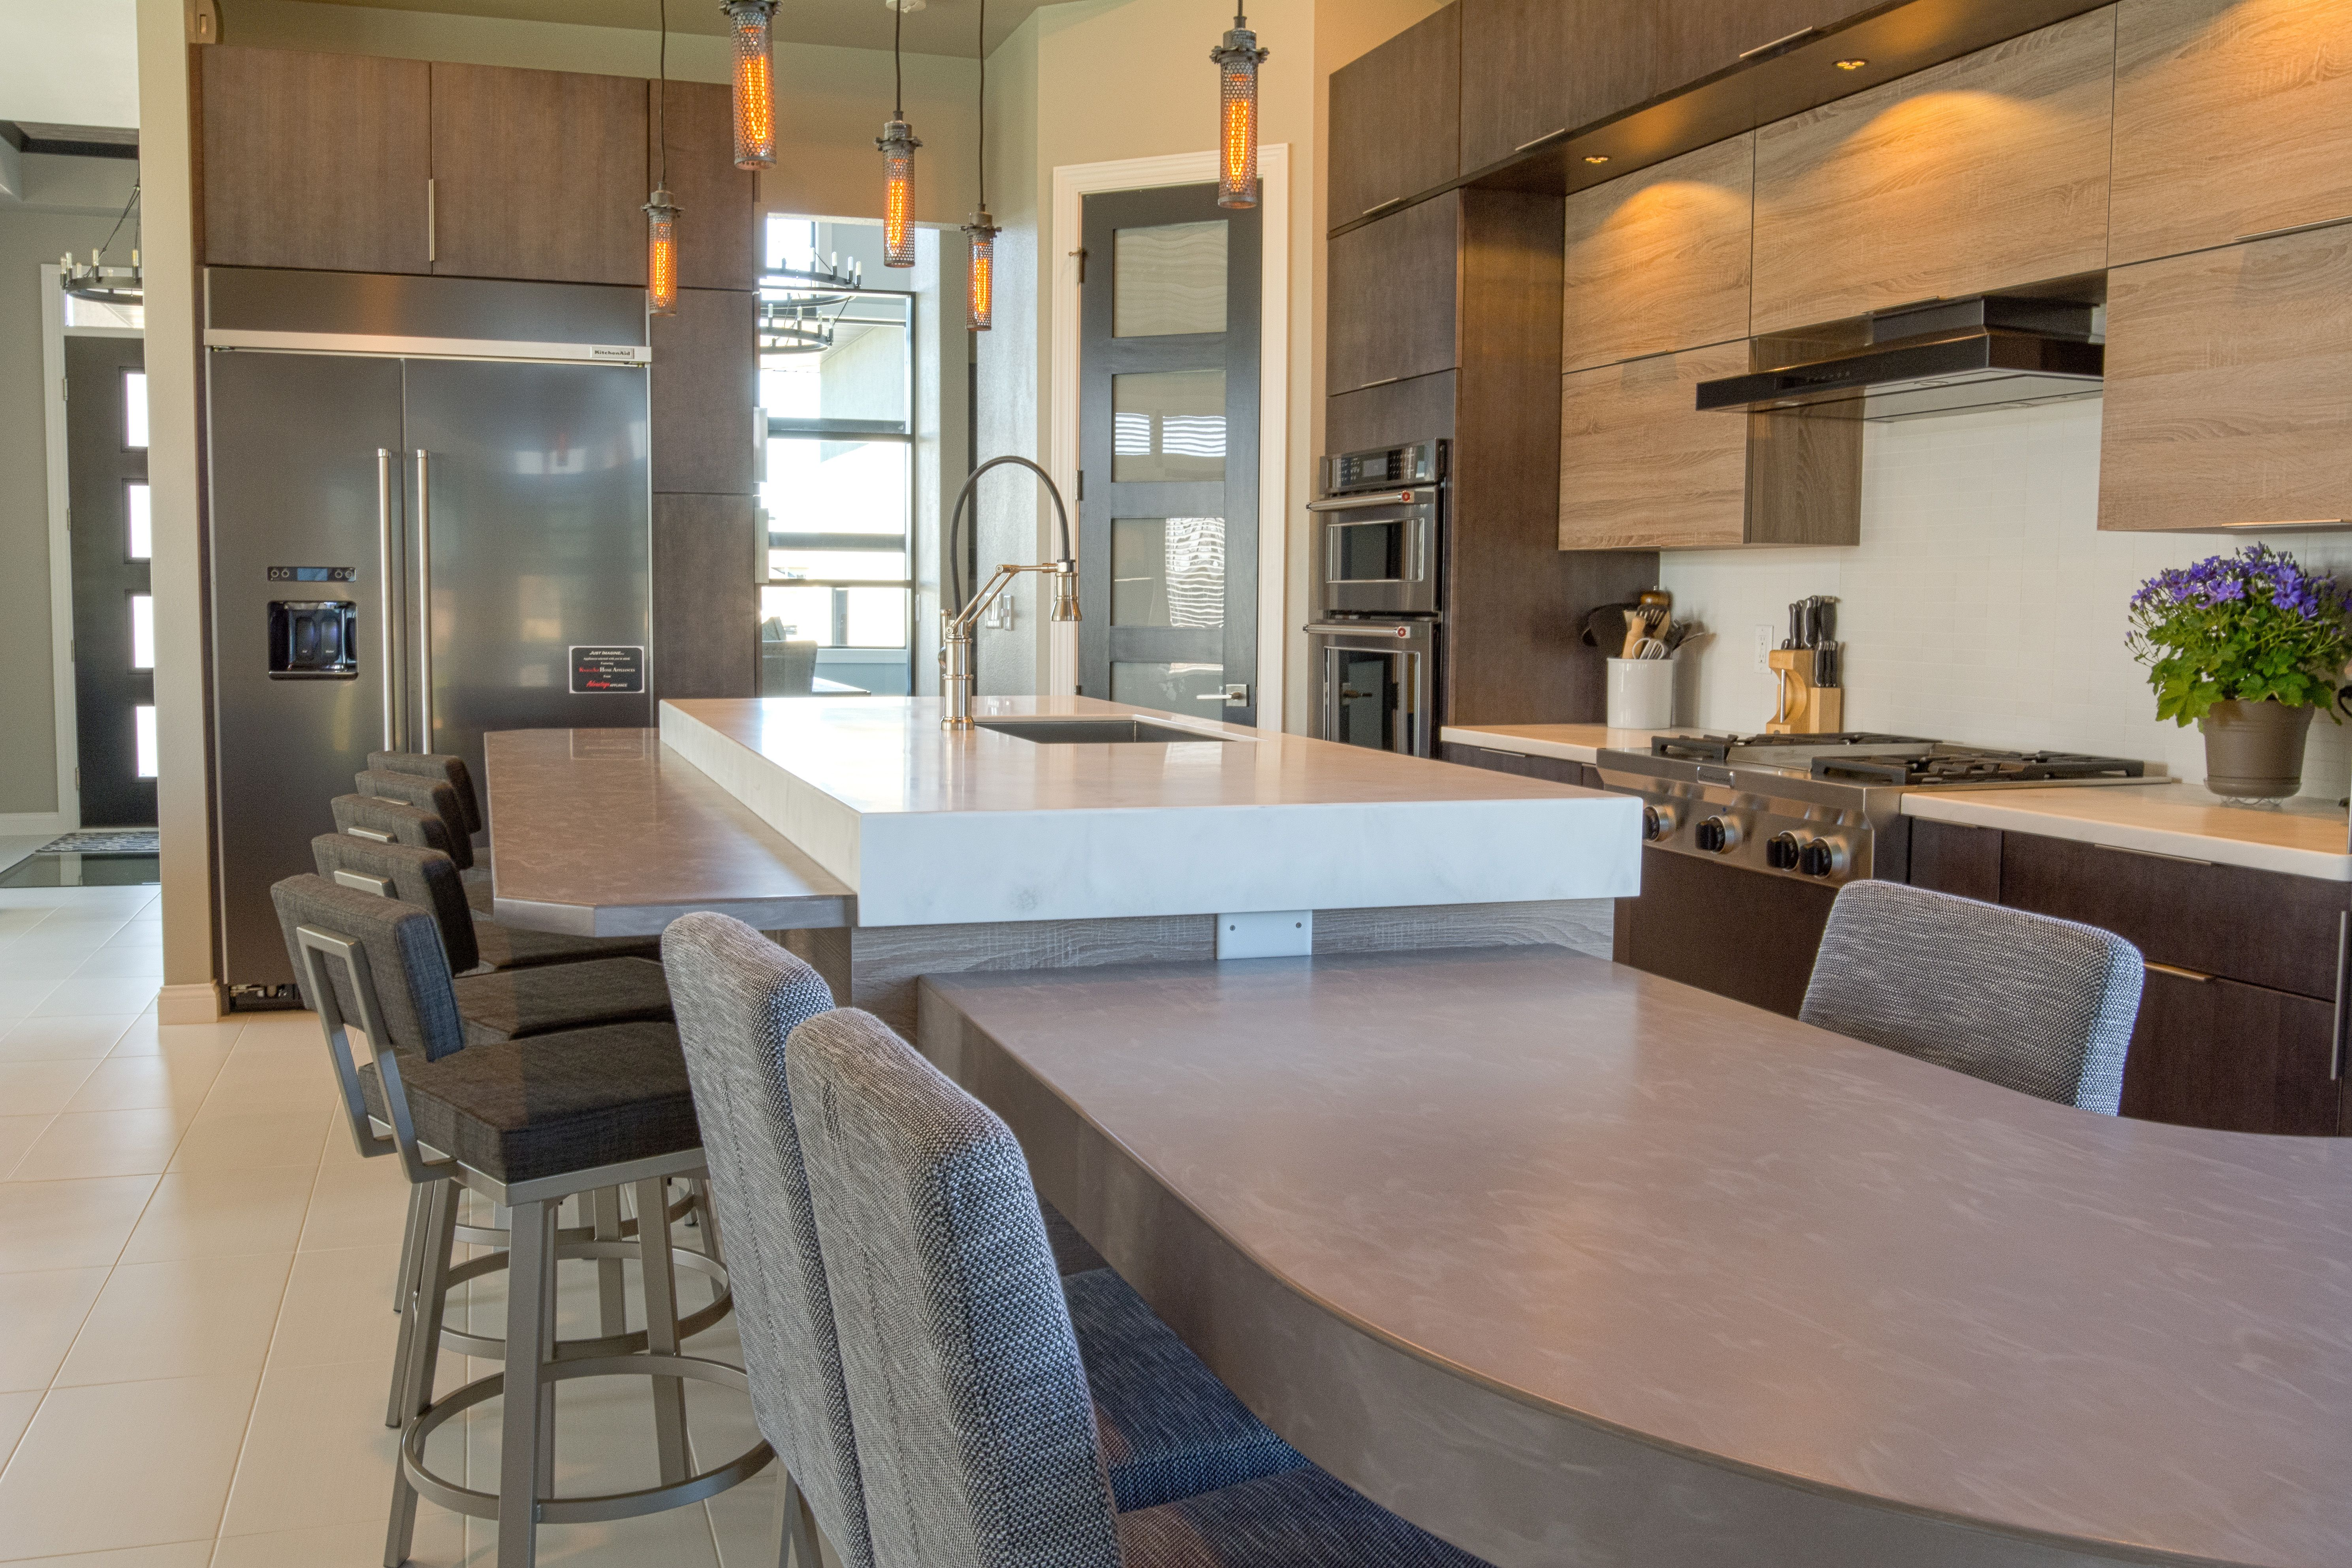 Rustic Modern Kitchen W Unique Corian And Wilsonart Solid Surface Countertops Countertop Material Brand Color Desert